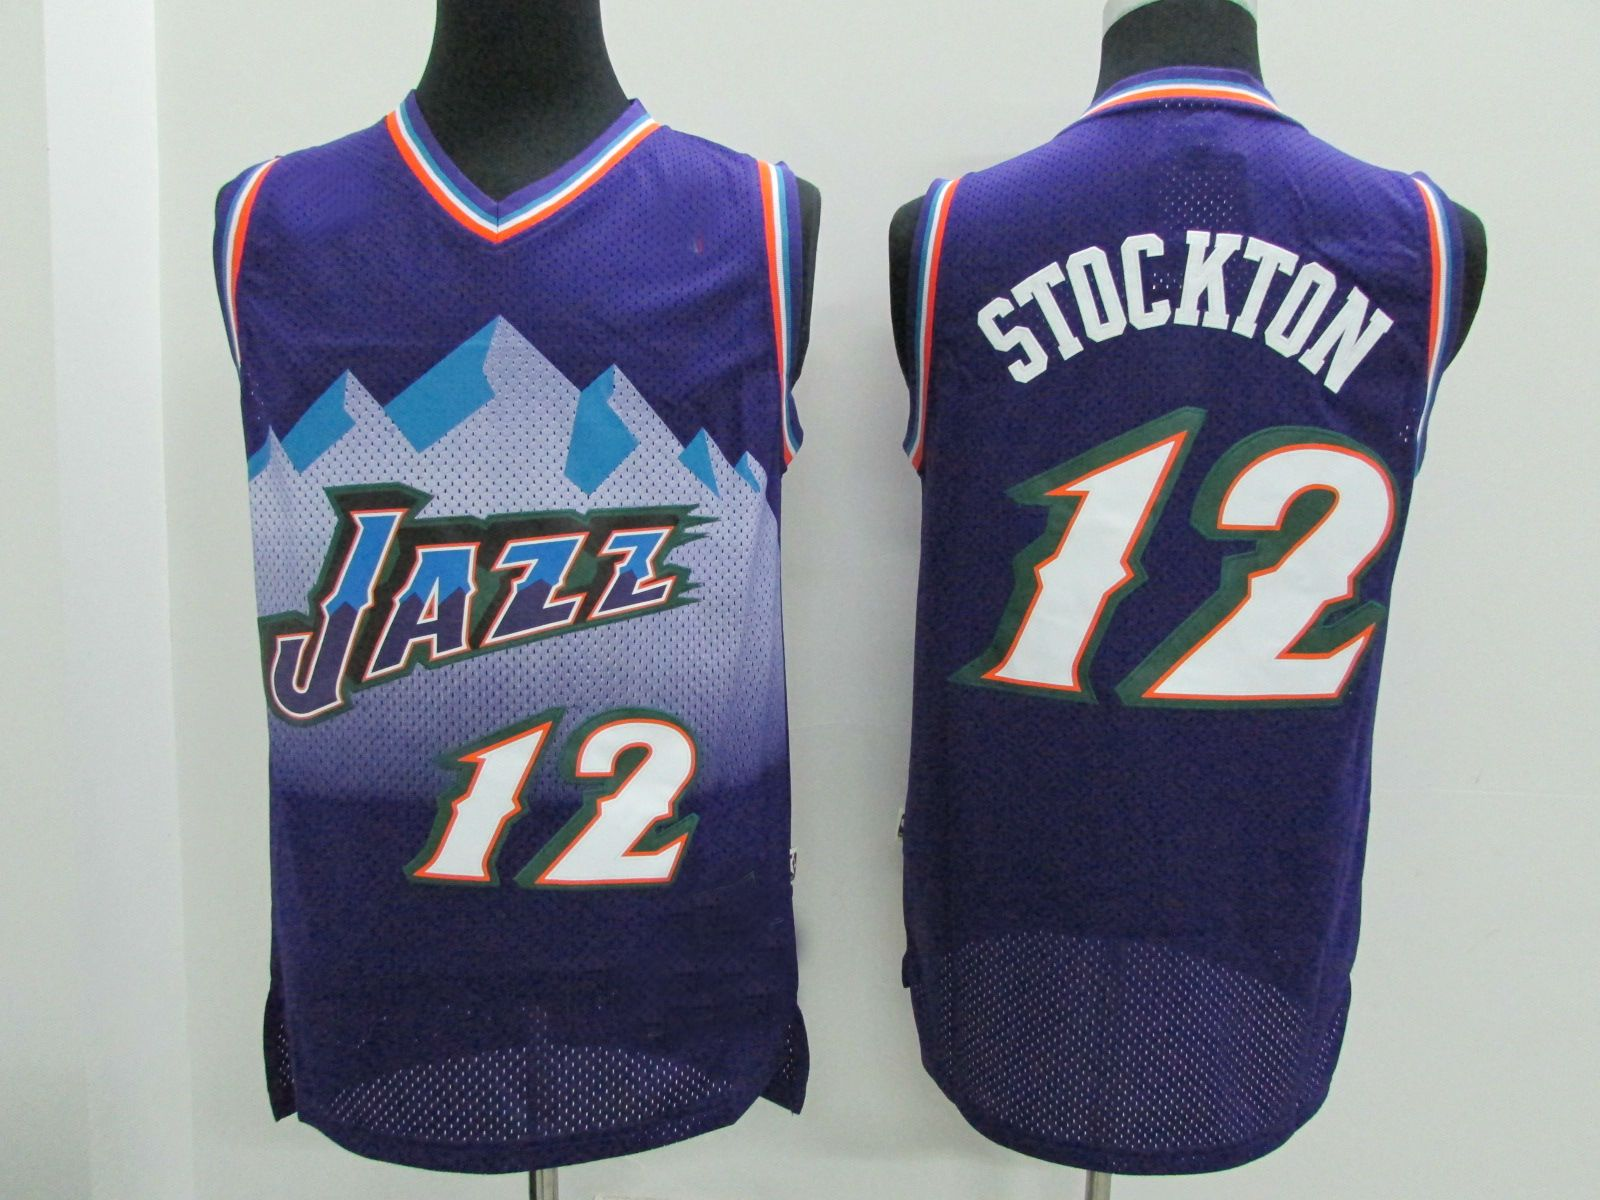 Retro Jerseys Utah Jazz Retro Jerseys 12 Stockton Purple Throwback Basketball Jersey From Fans4store